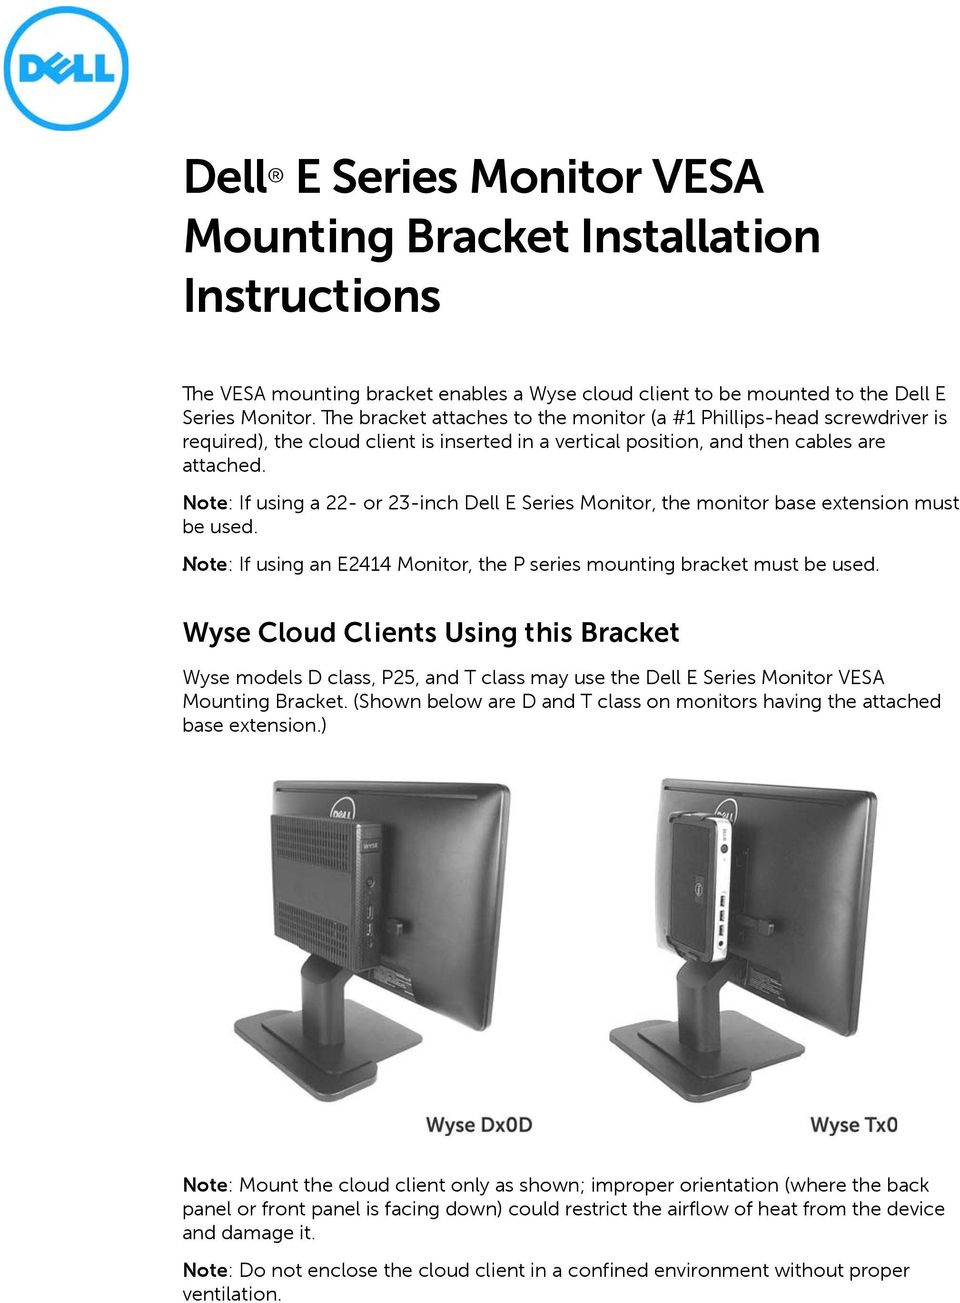 Note: If using a 22- or 23-inch Dell E Series Monitor, the monitor base extension must be used. Note: If using an E2414 Monitor, the P series mounting bracket must be used.